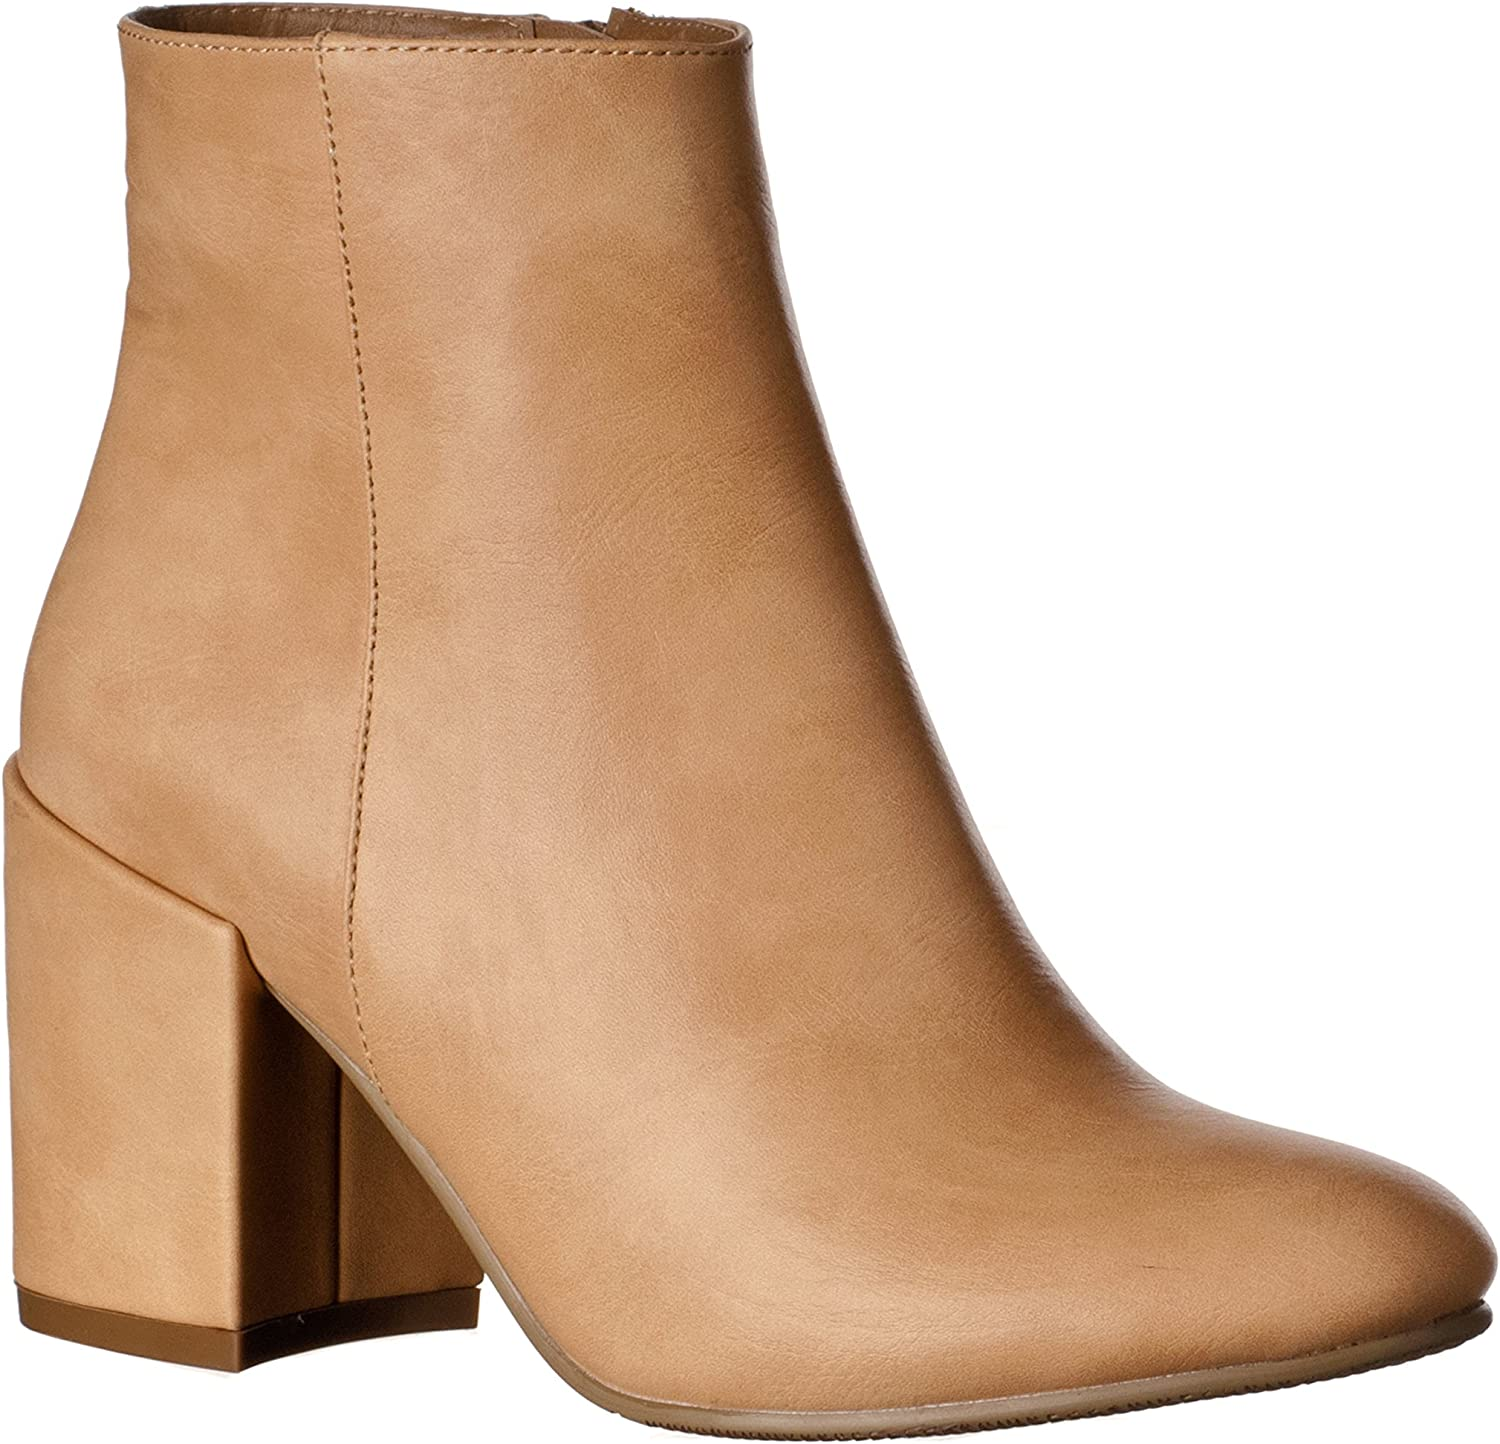 Riverberry Women's Tori Chunky, High Heel Ankle Bootie Boots